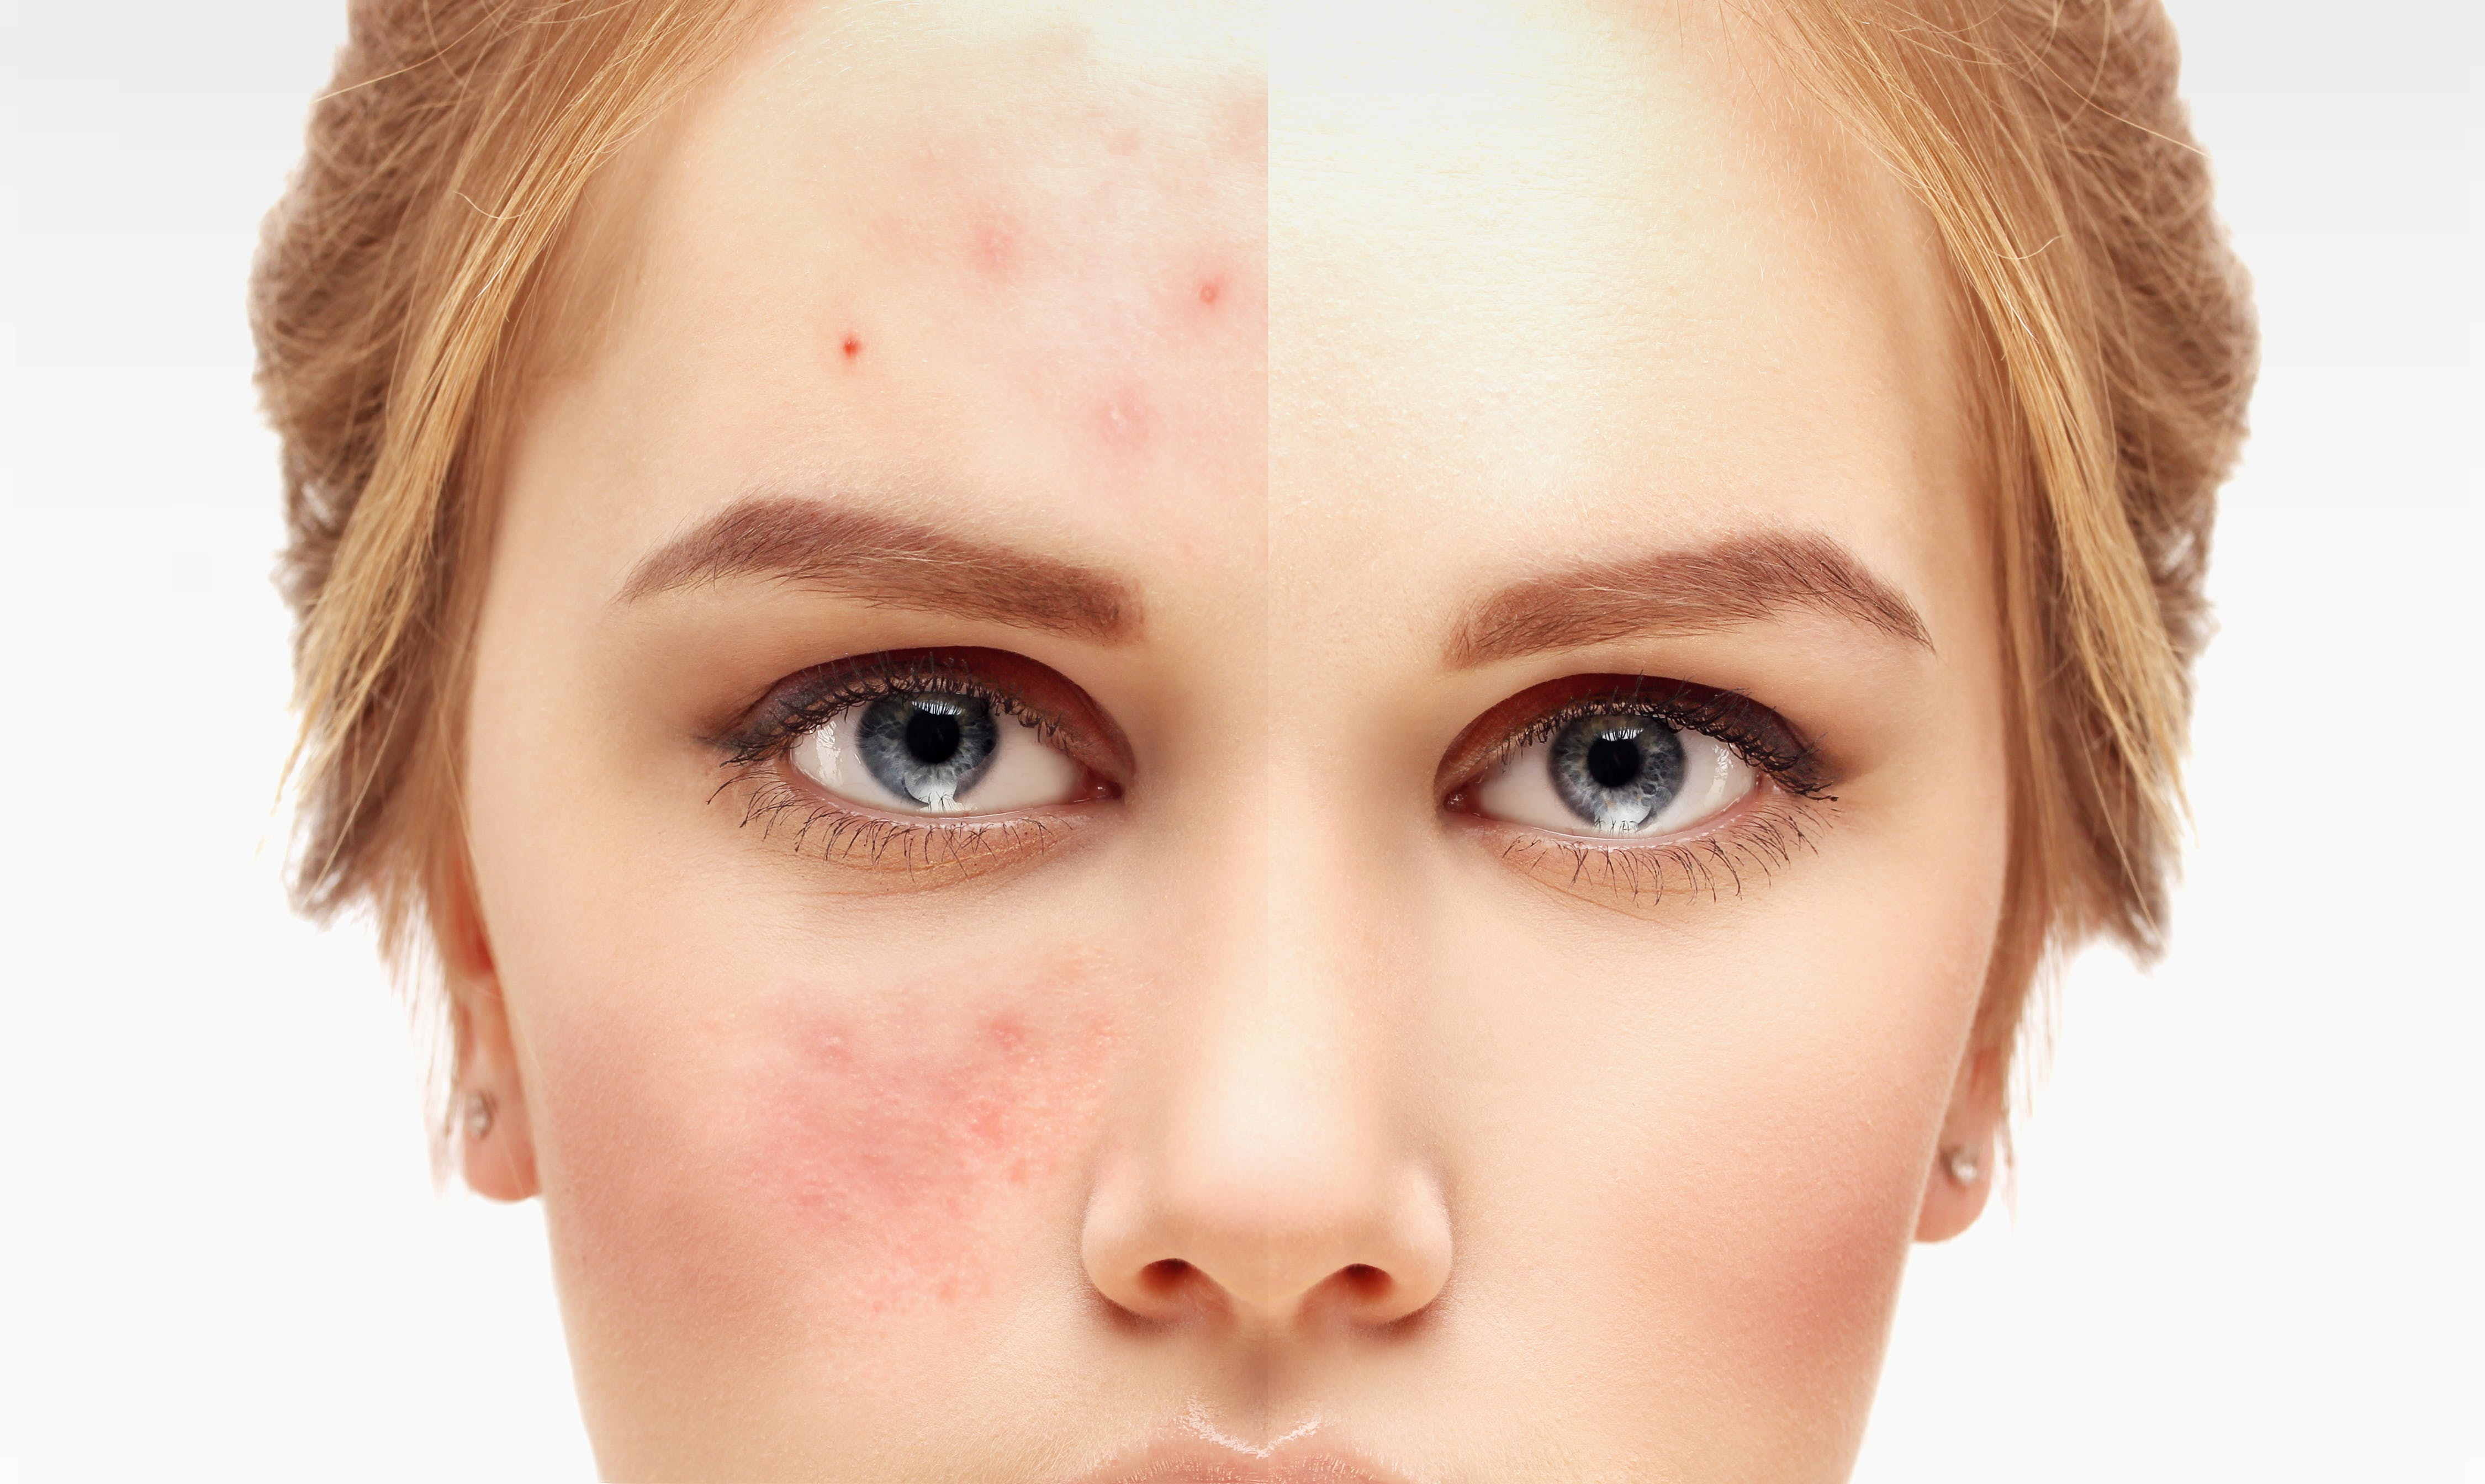 Can keto or low-carb diets cure acne?